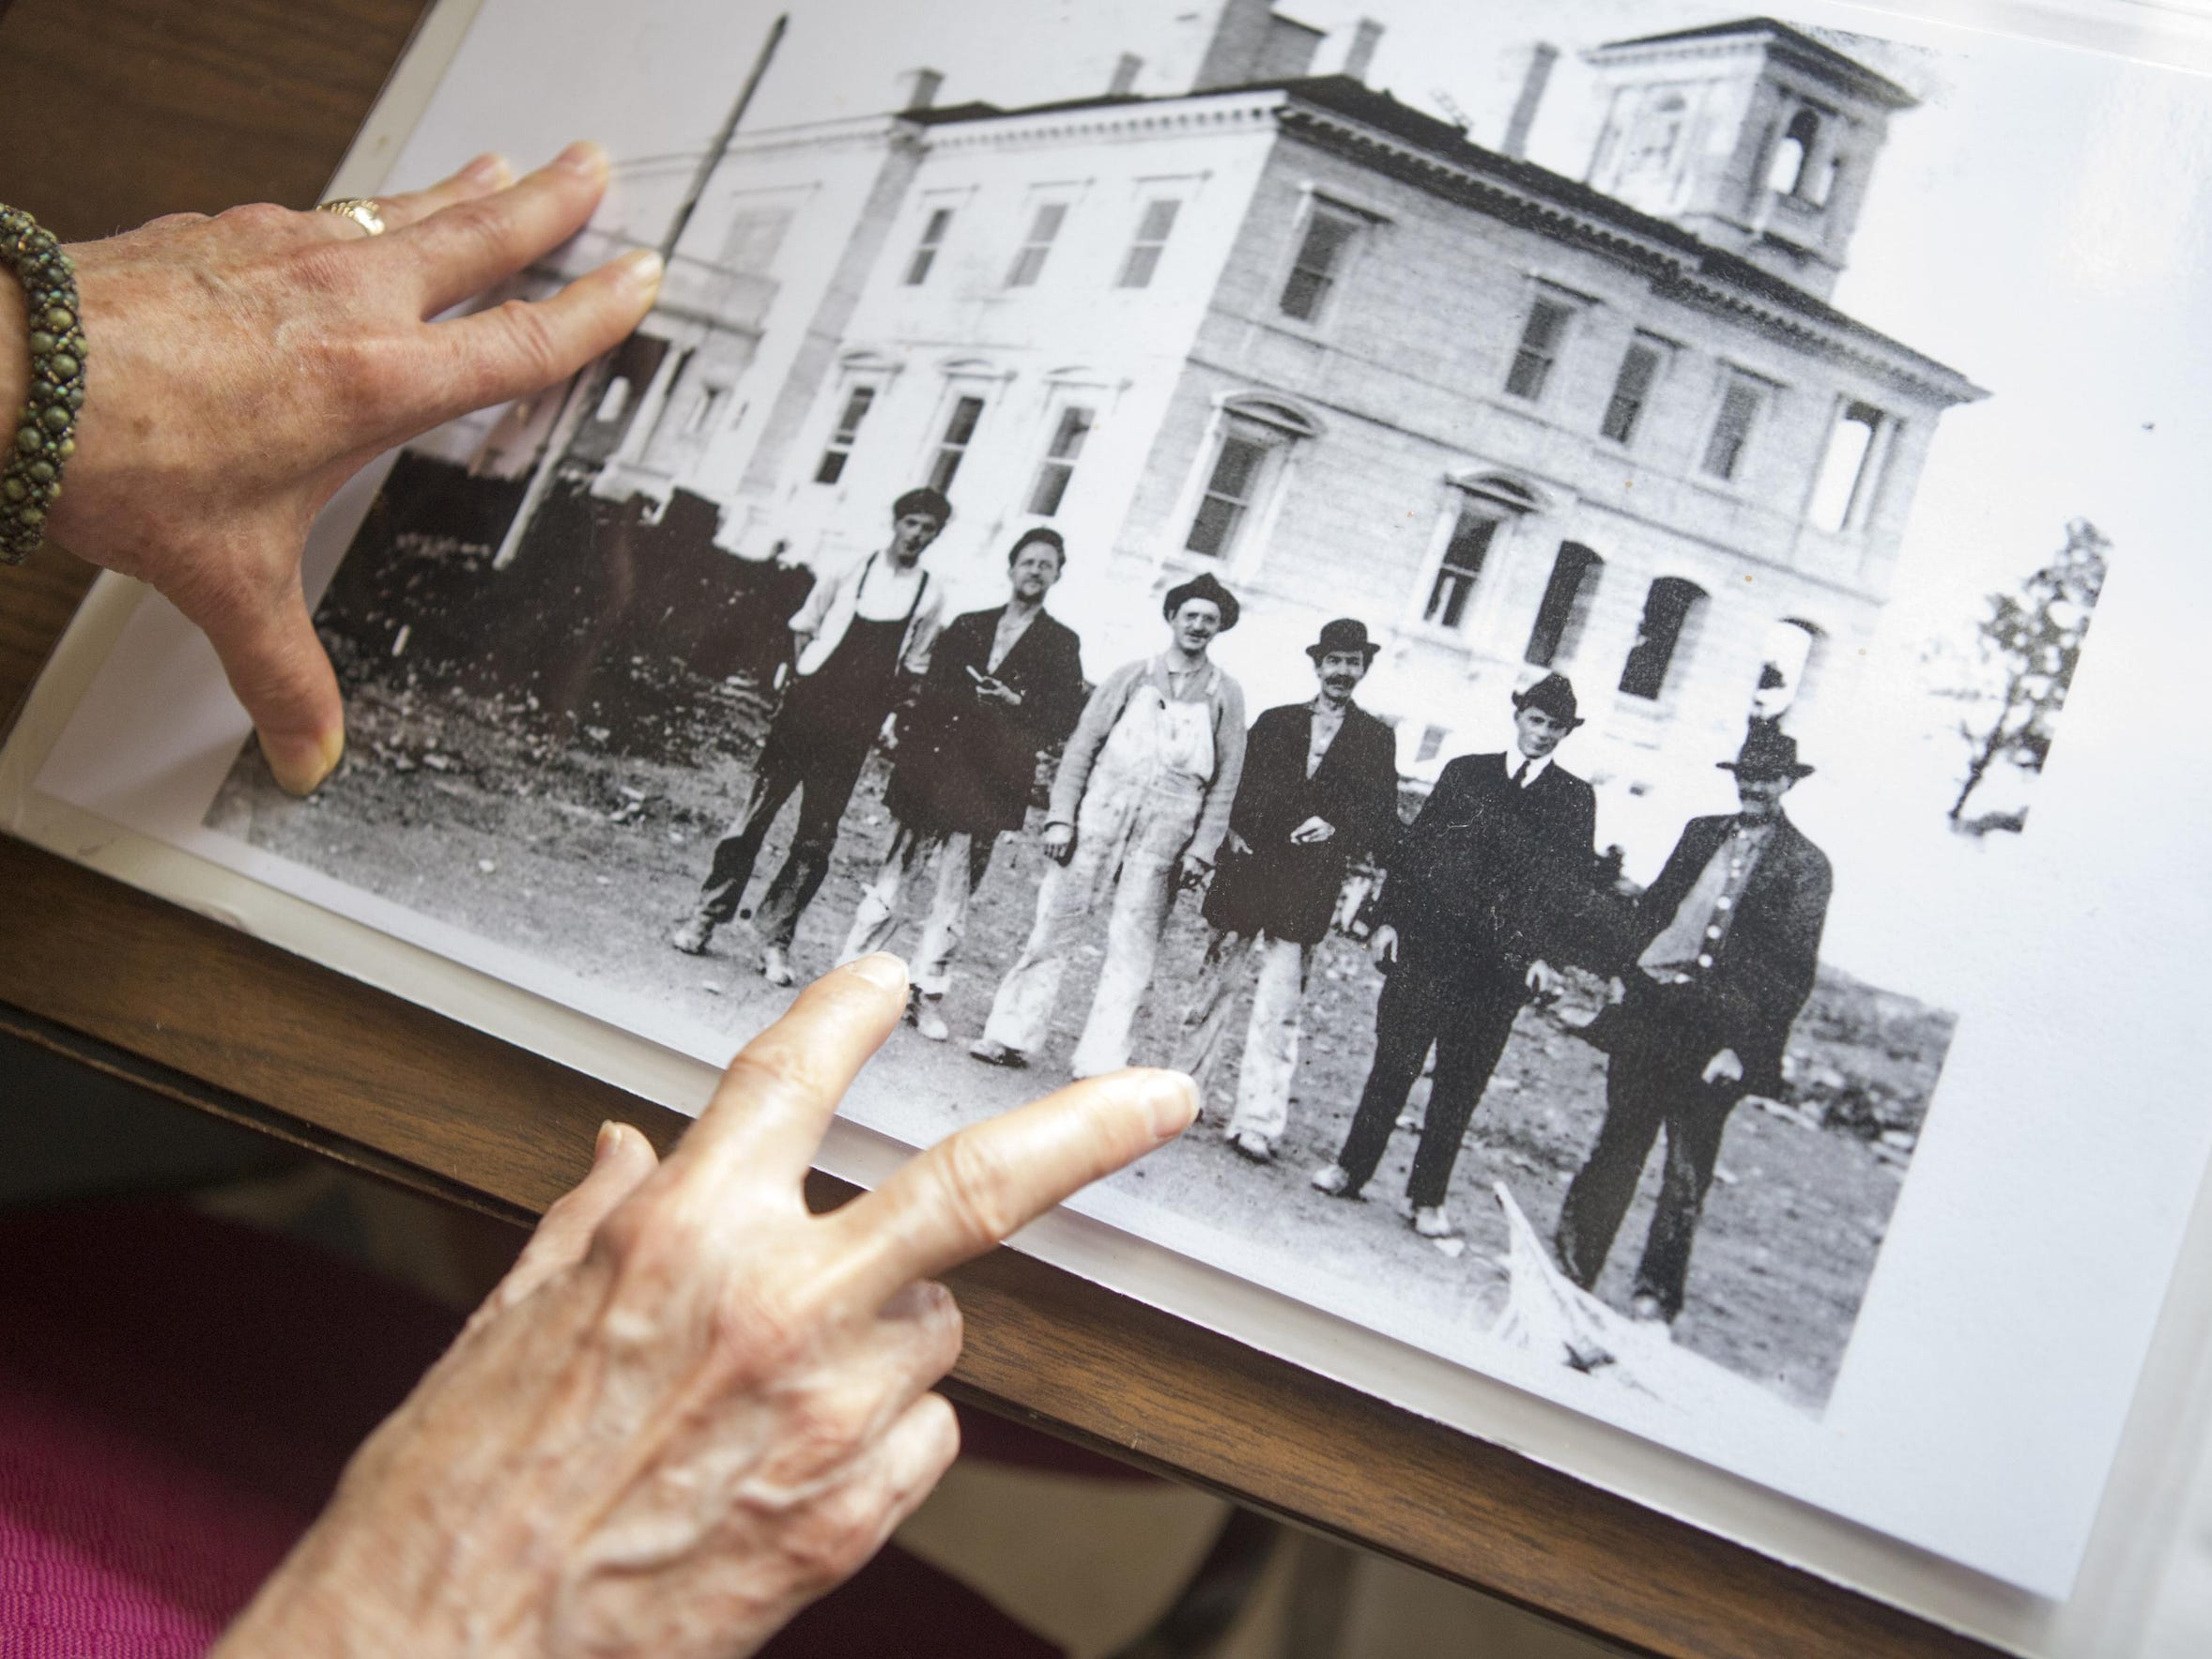 Sandi Dulaney points out James Dooley, third from right,